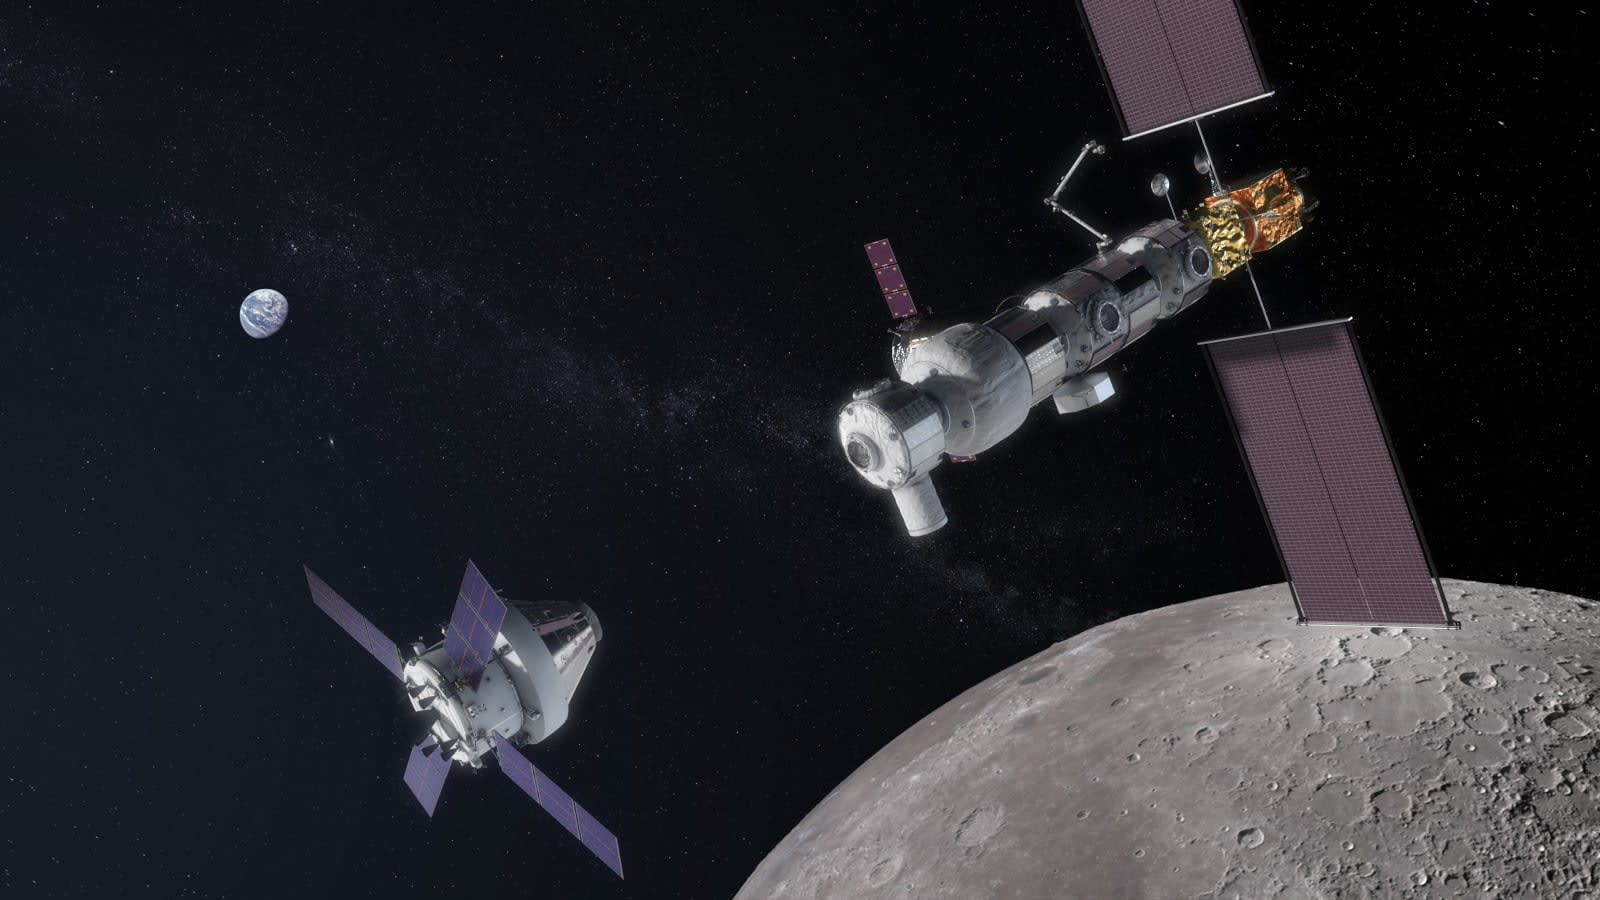 Japan will help NASA build a space station near the Moon